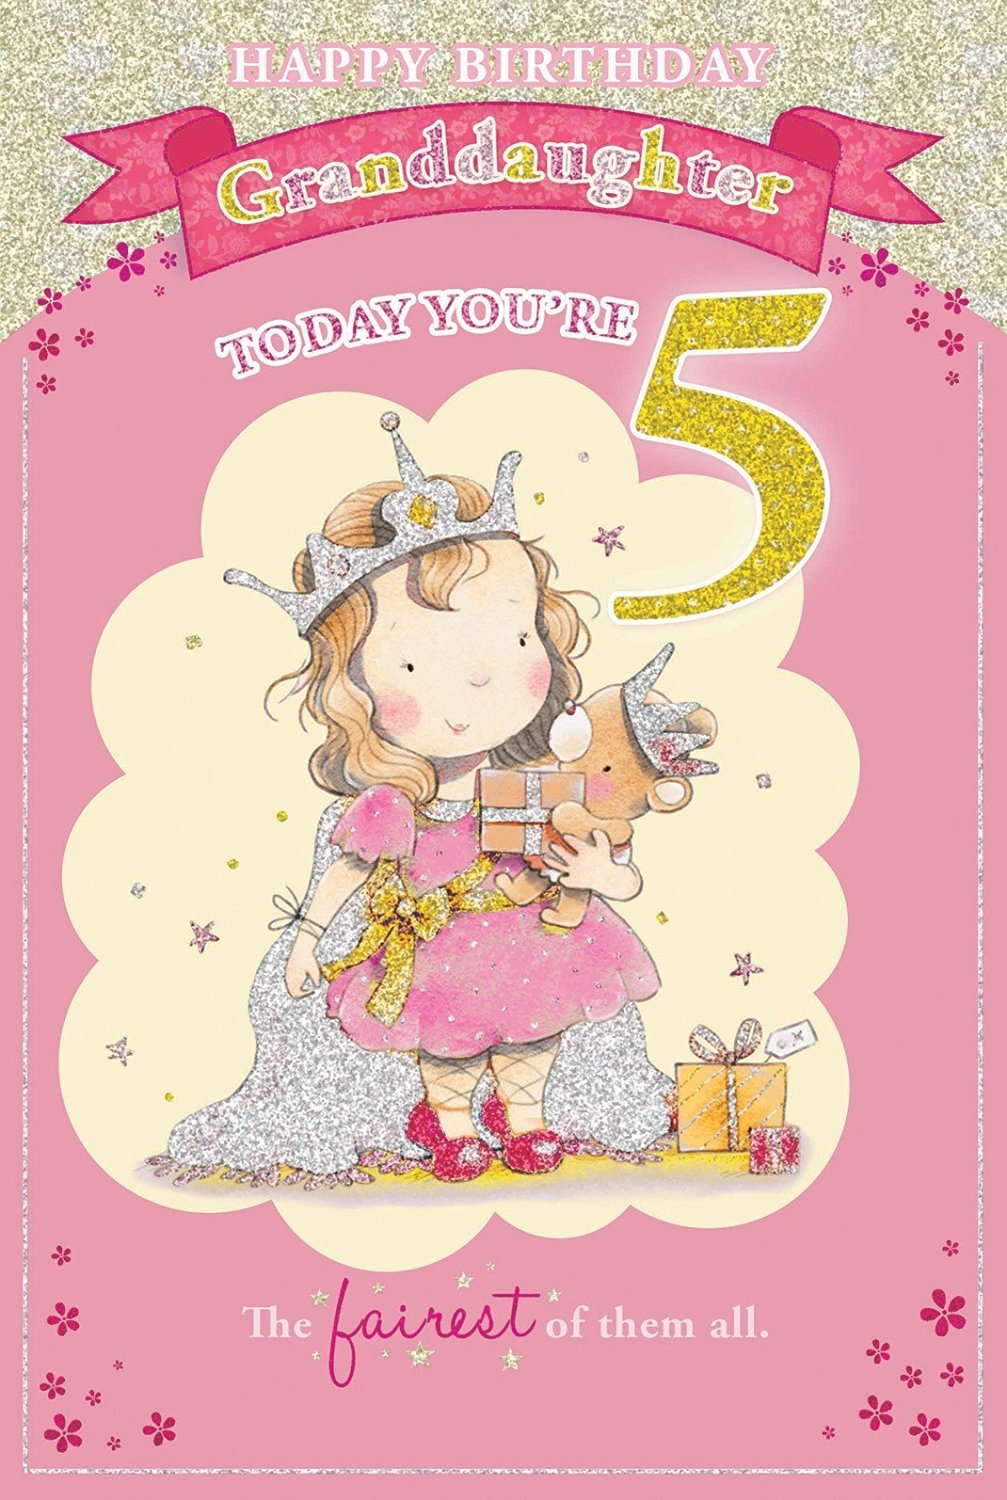 Candy Club Granddaughters 5Th Birthday Card